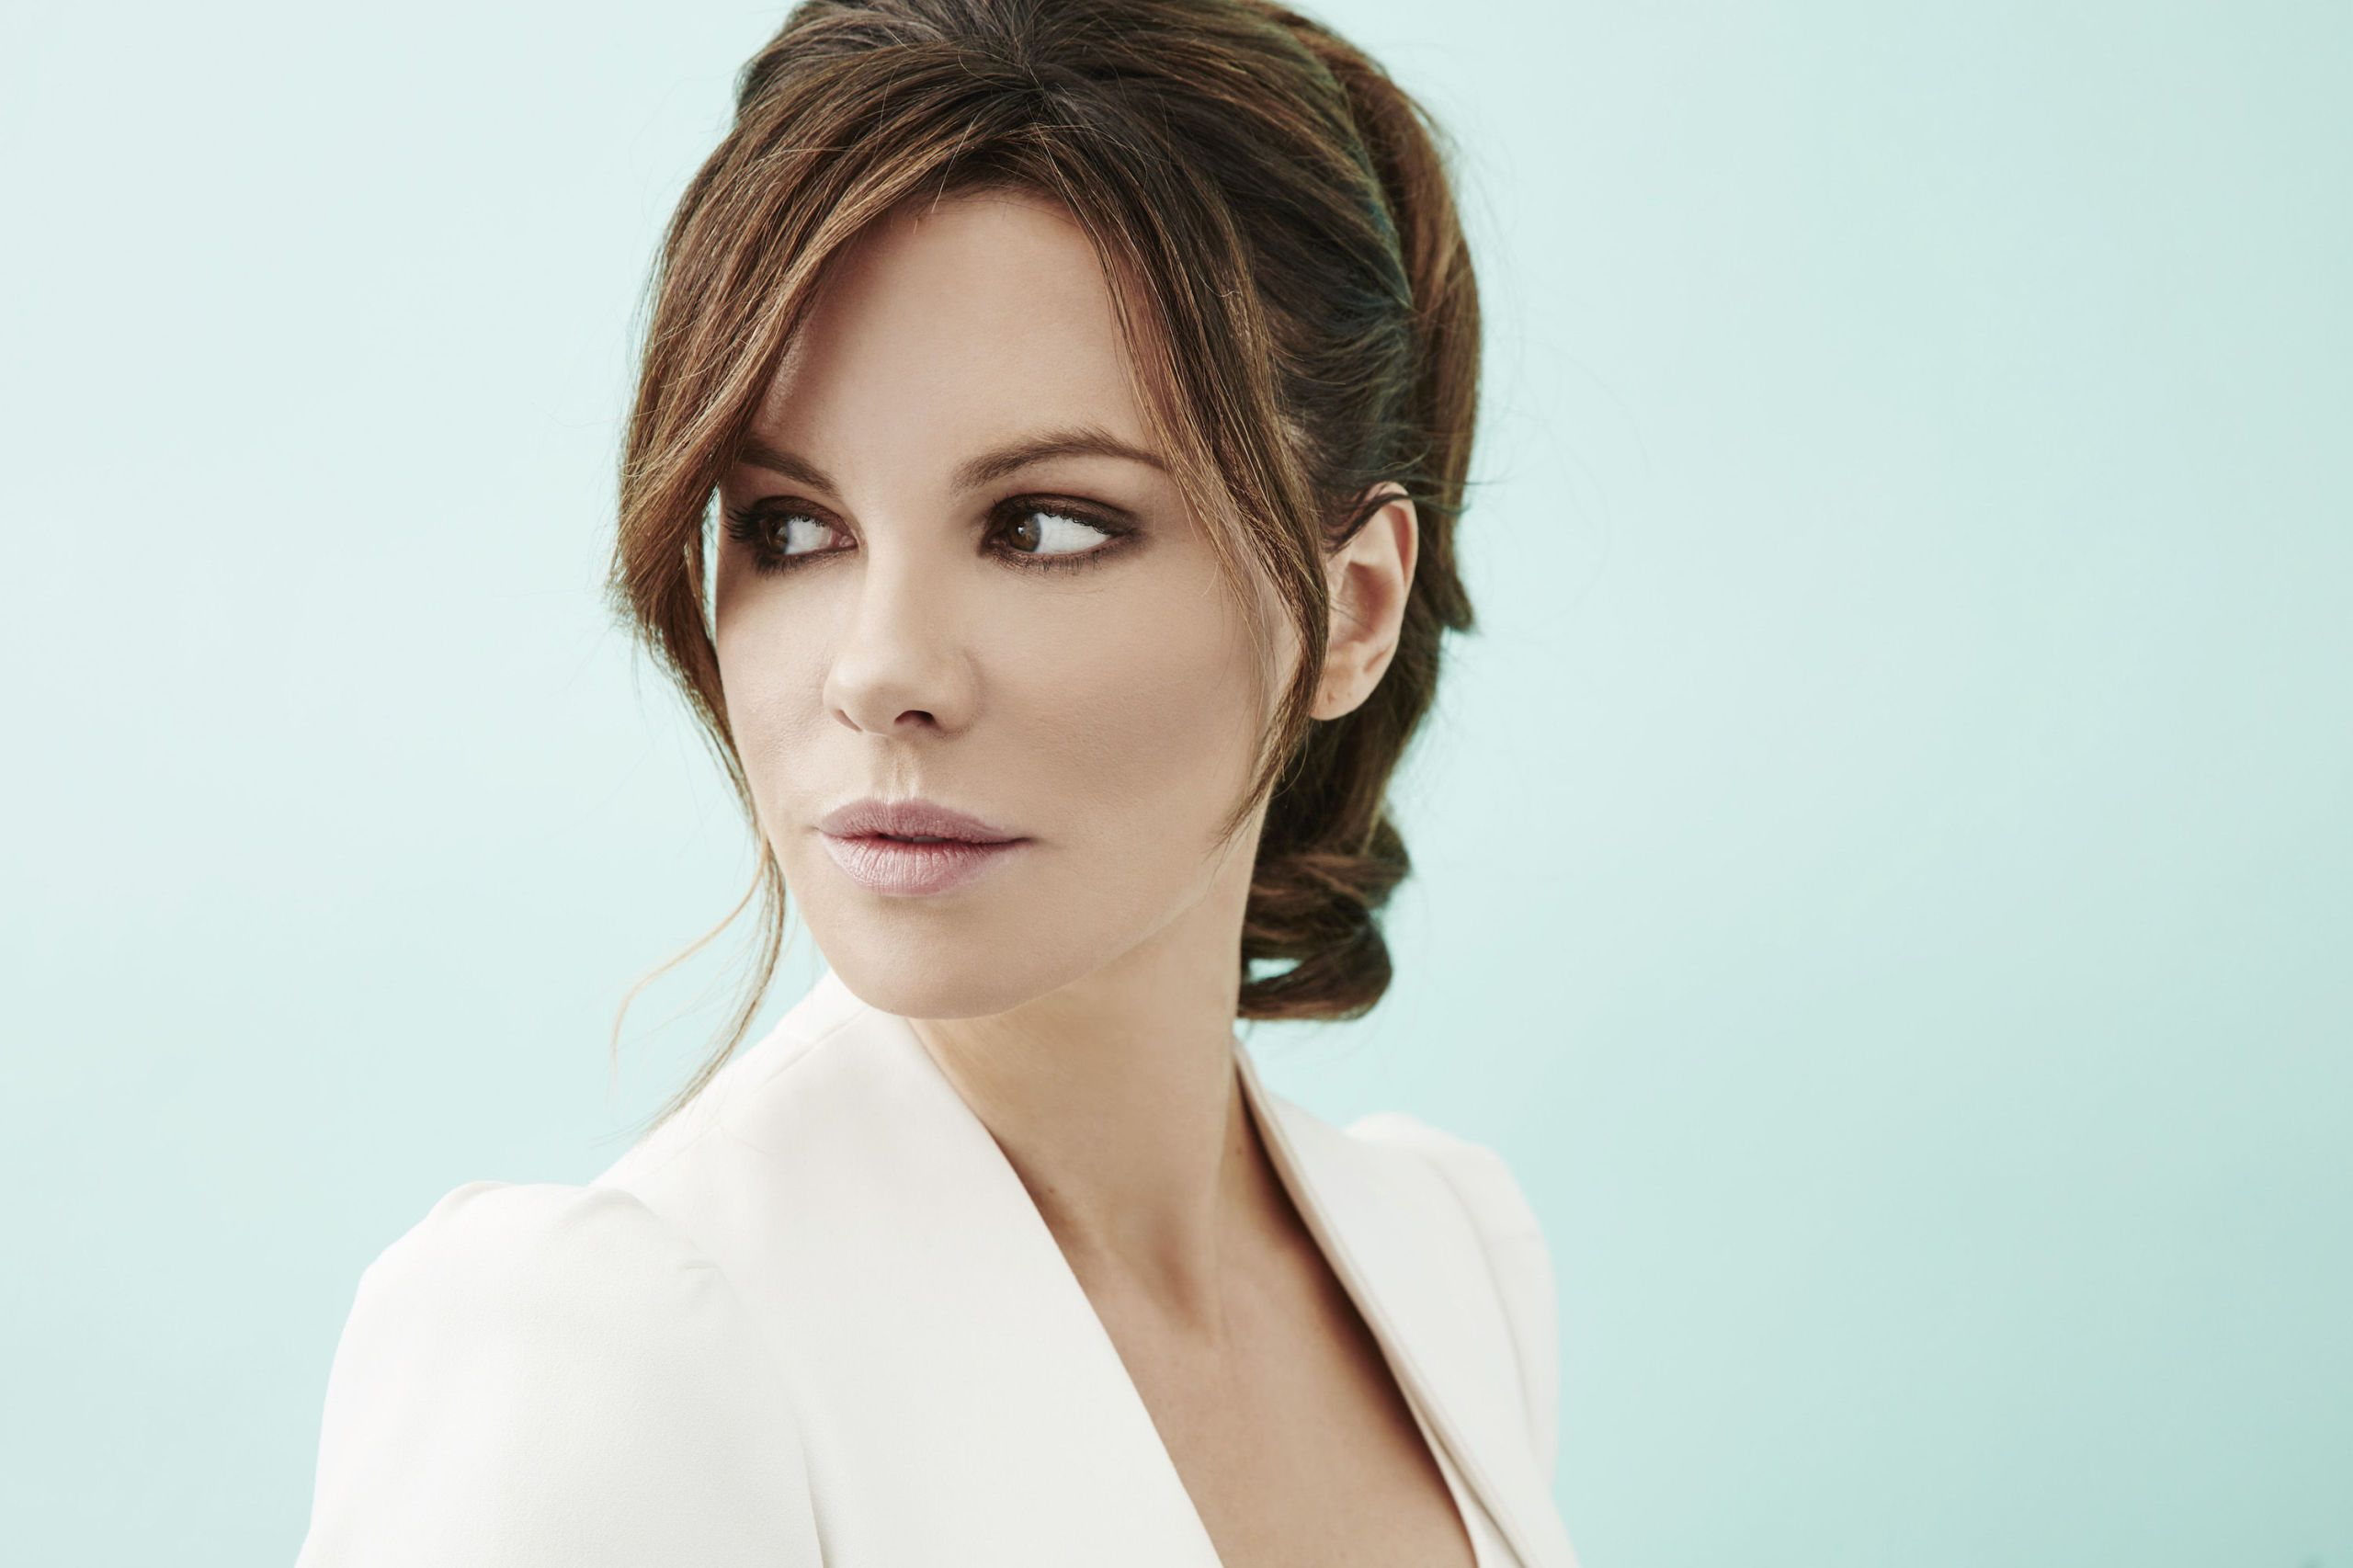 Kate Beckinsale Has a Pretty Good Idea for Fixing Marriage